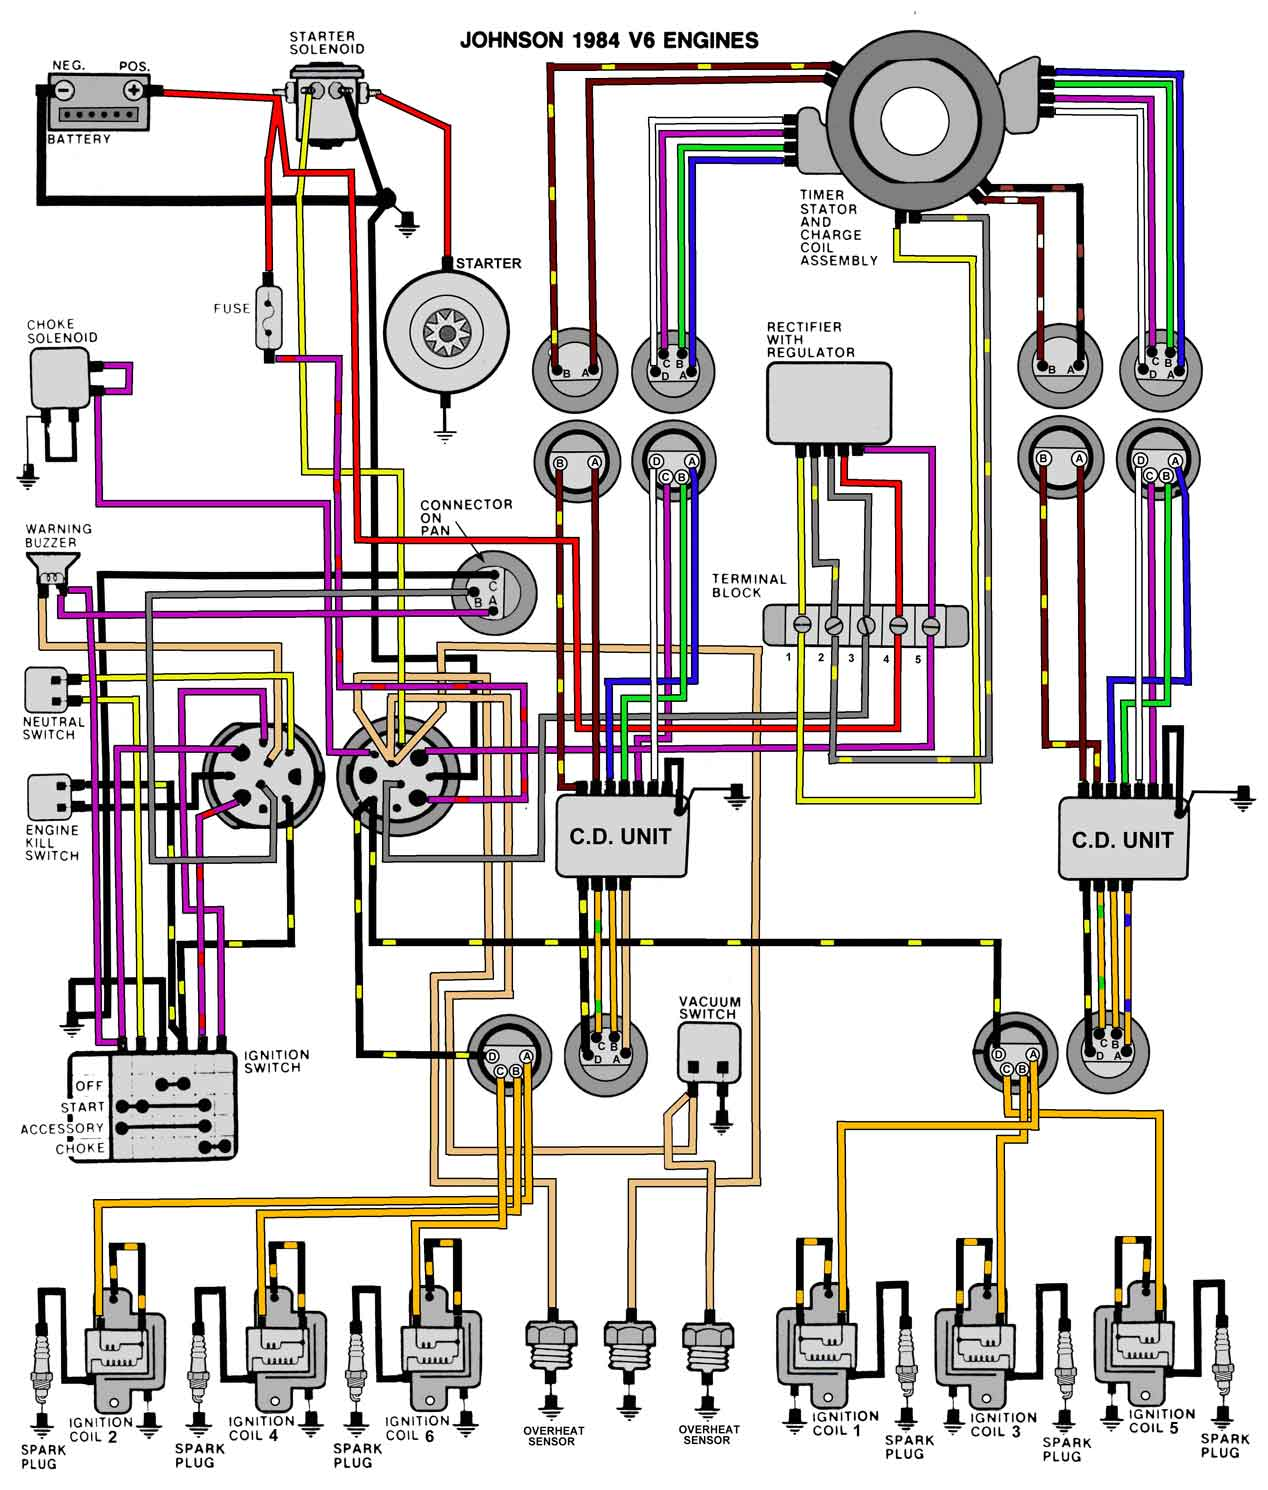 84_V6 boat motor wiring diagram small boat wiring diagram \u2022 wiring wiring diagram for 115 mercury outboard motor at suagrazia.org